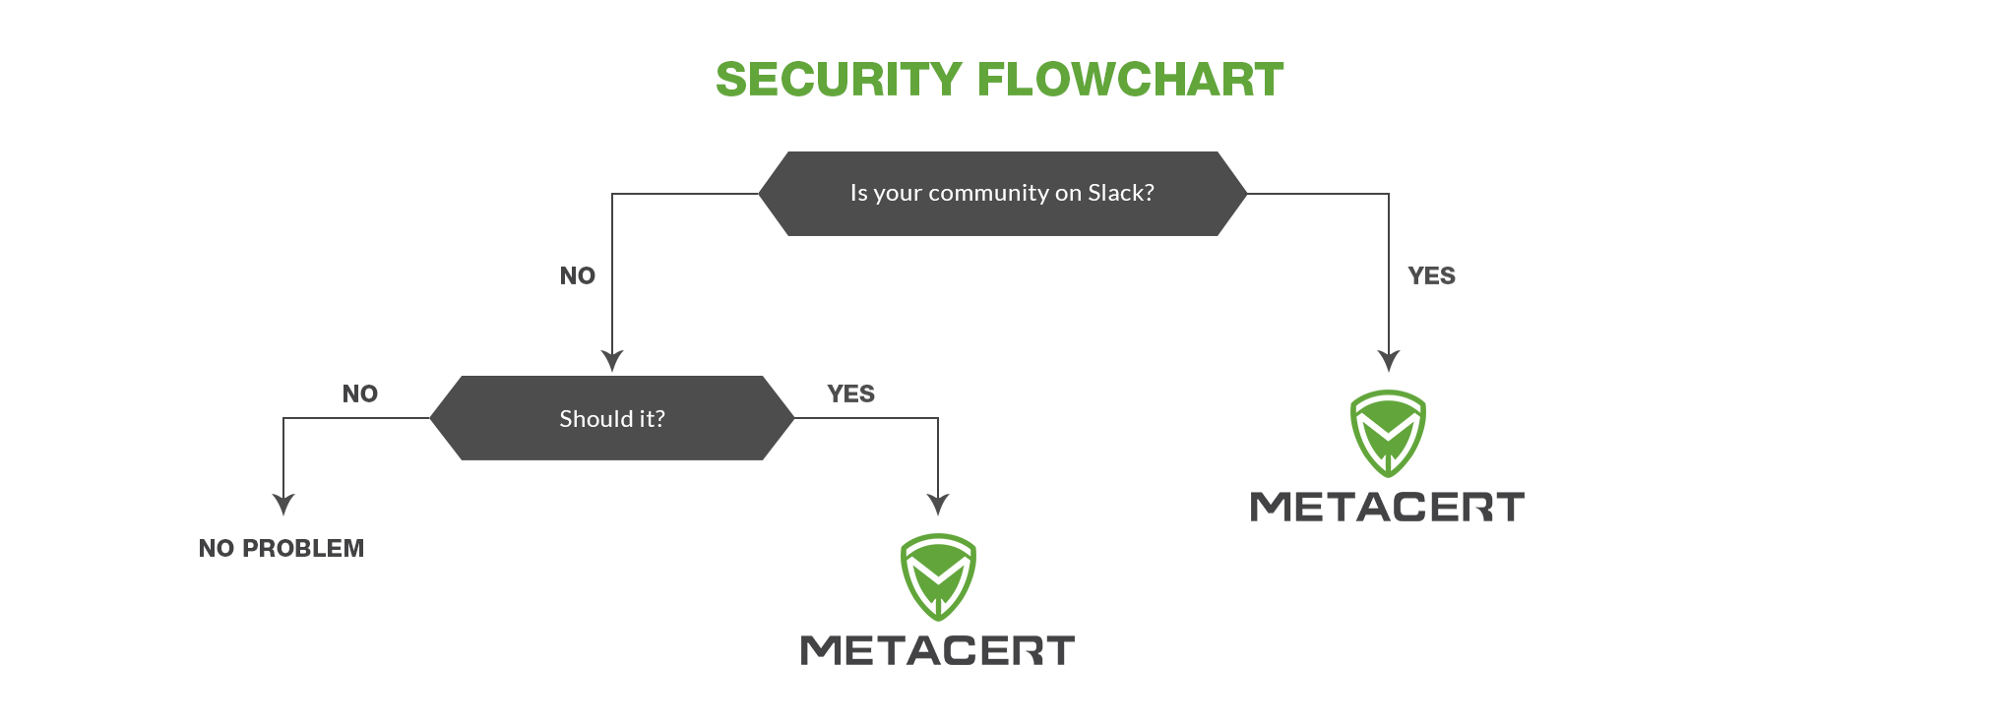 The New Security Flowchart for Token Launches and ICO